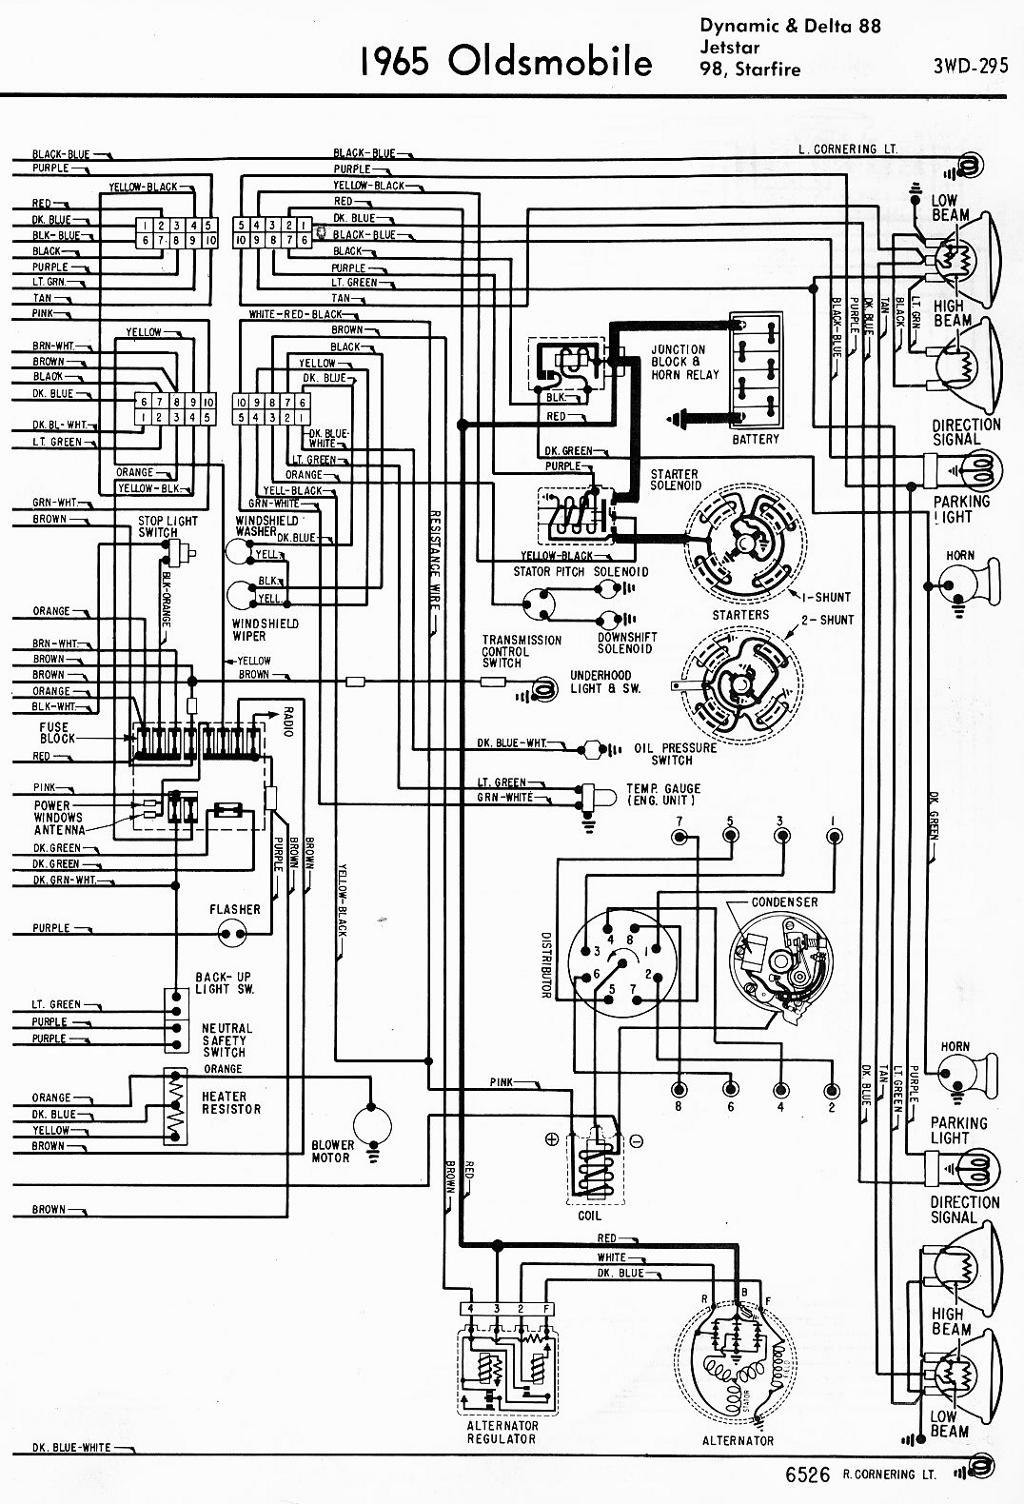 1995 Oldsmobile Silhouette Wiring Diagram Detailed Schematics Alternator 88 Electrical Diagrams Chevy Monte Carlo